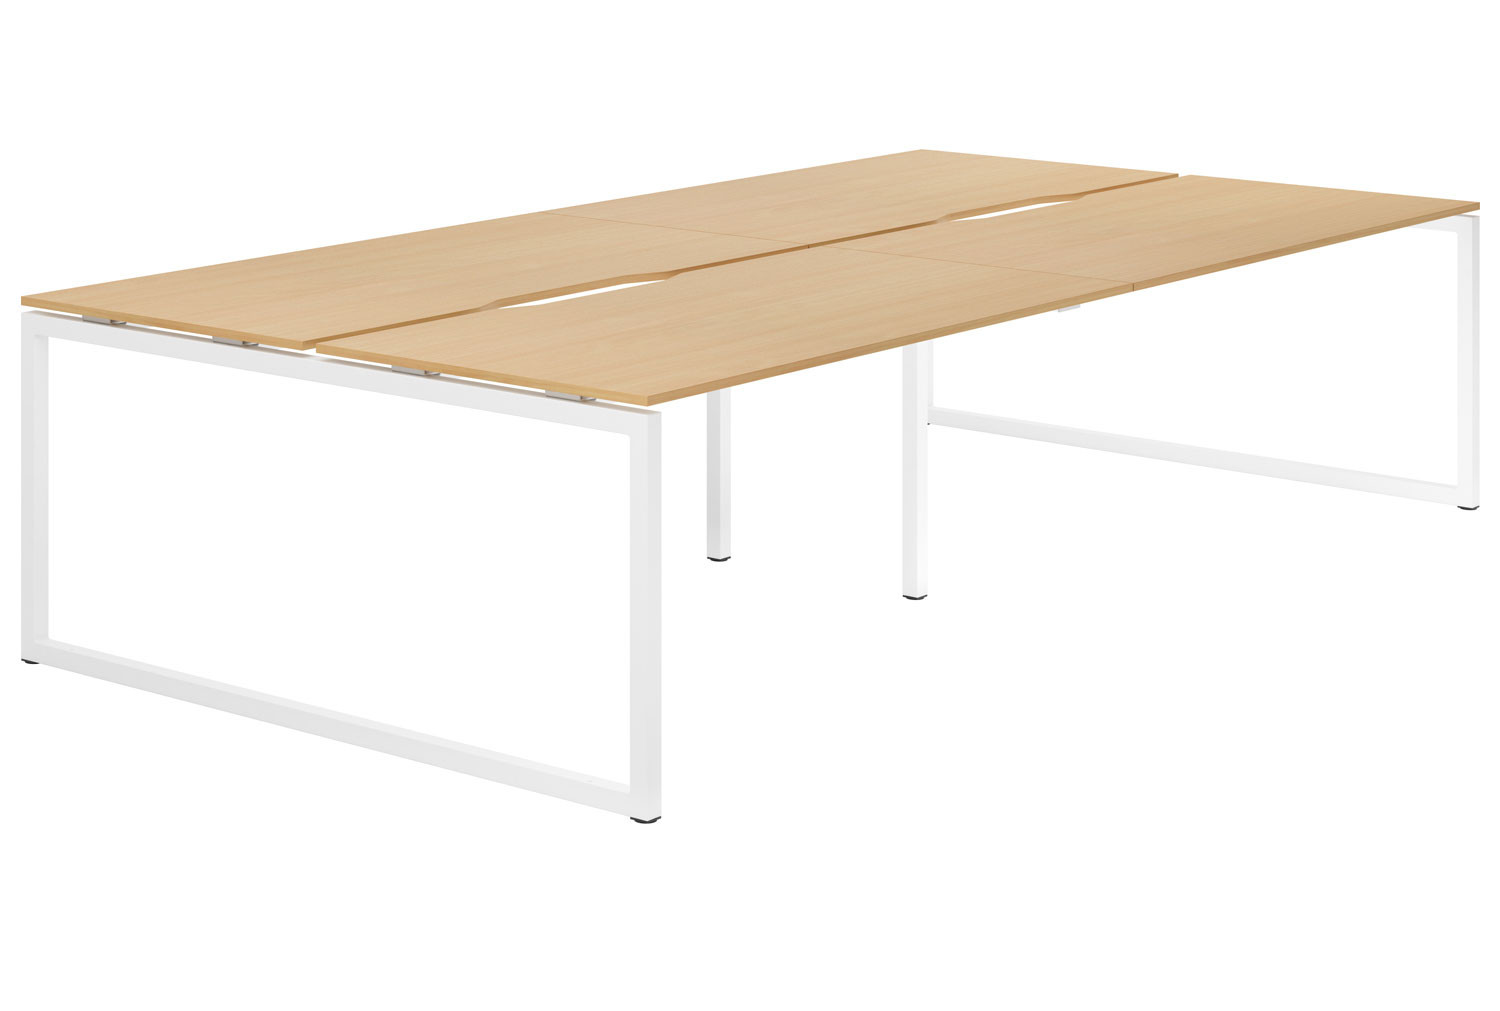 Lozano Hooped Leg Back To Back 4 Person Bench Desk (Beech)